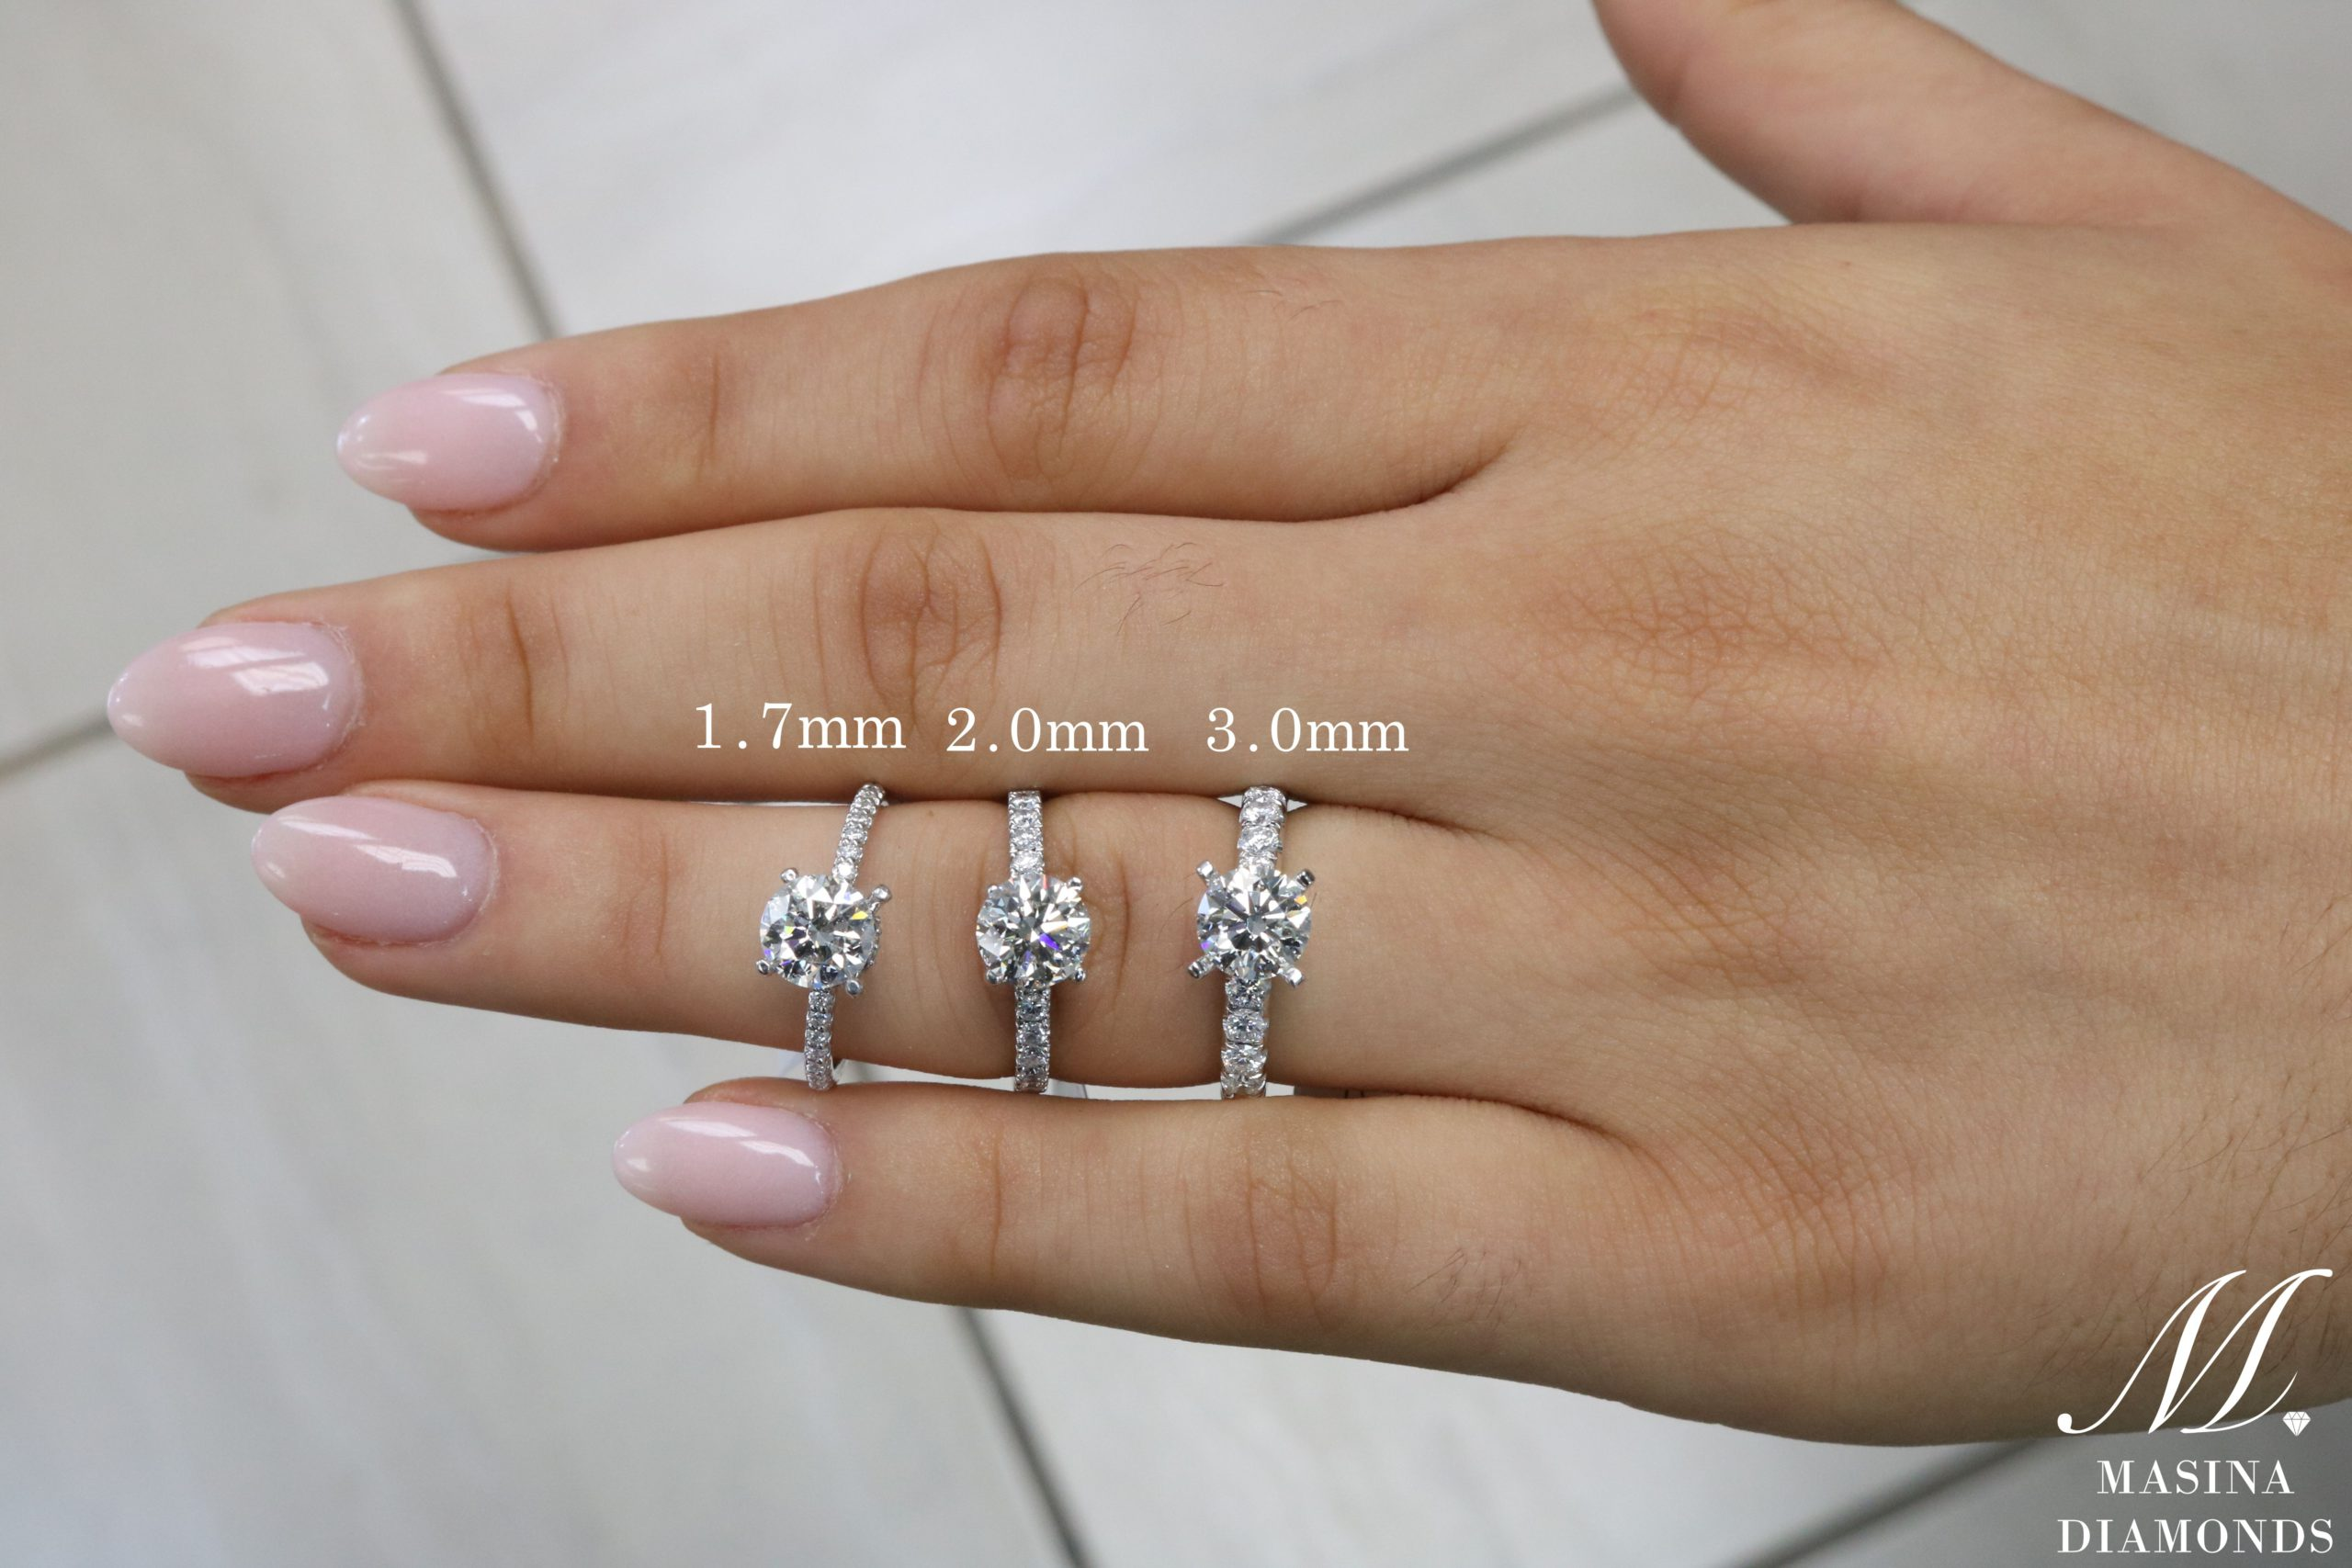 Engagement Ring Band Widths